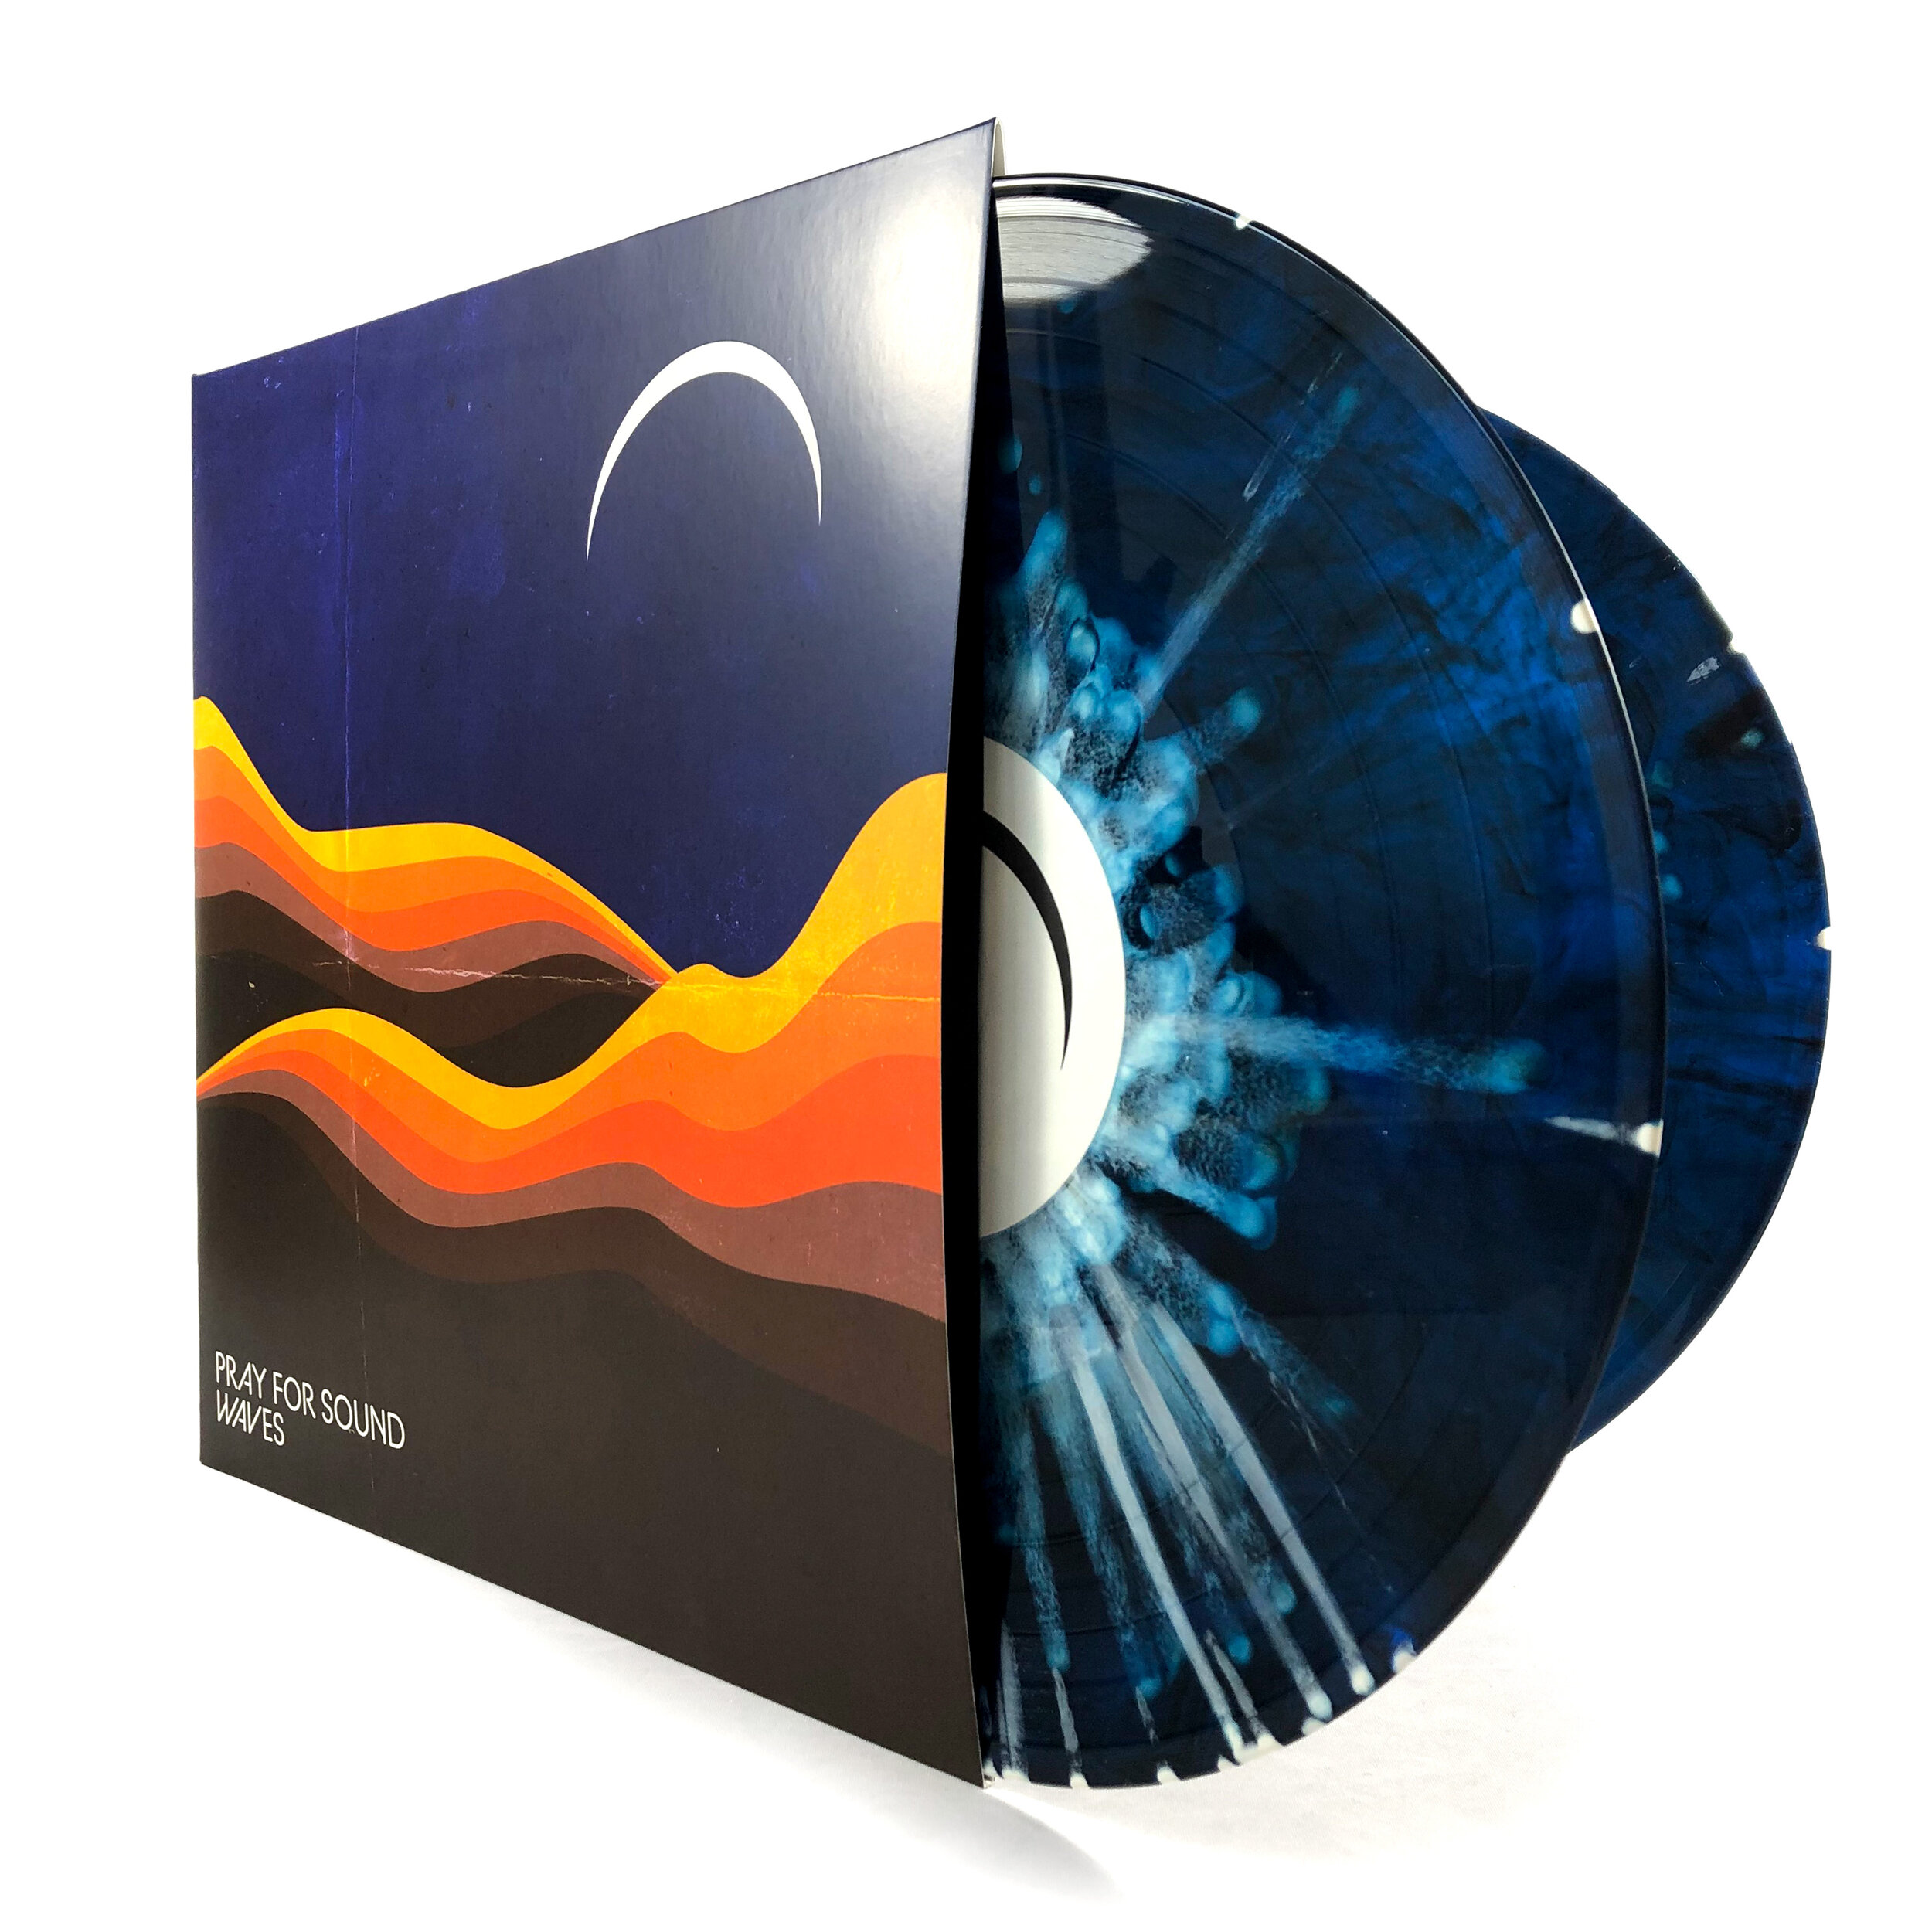 Pray For Sound • Waves [2xLP] - Released on Nov. 8th, 2019. Limited to 200 copies.Comes on double 180g colord Blue/Black Marble w/ White Splatter